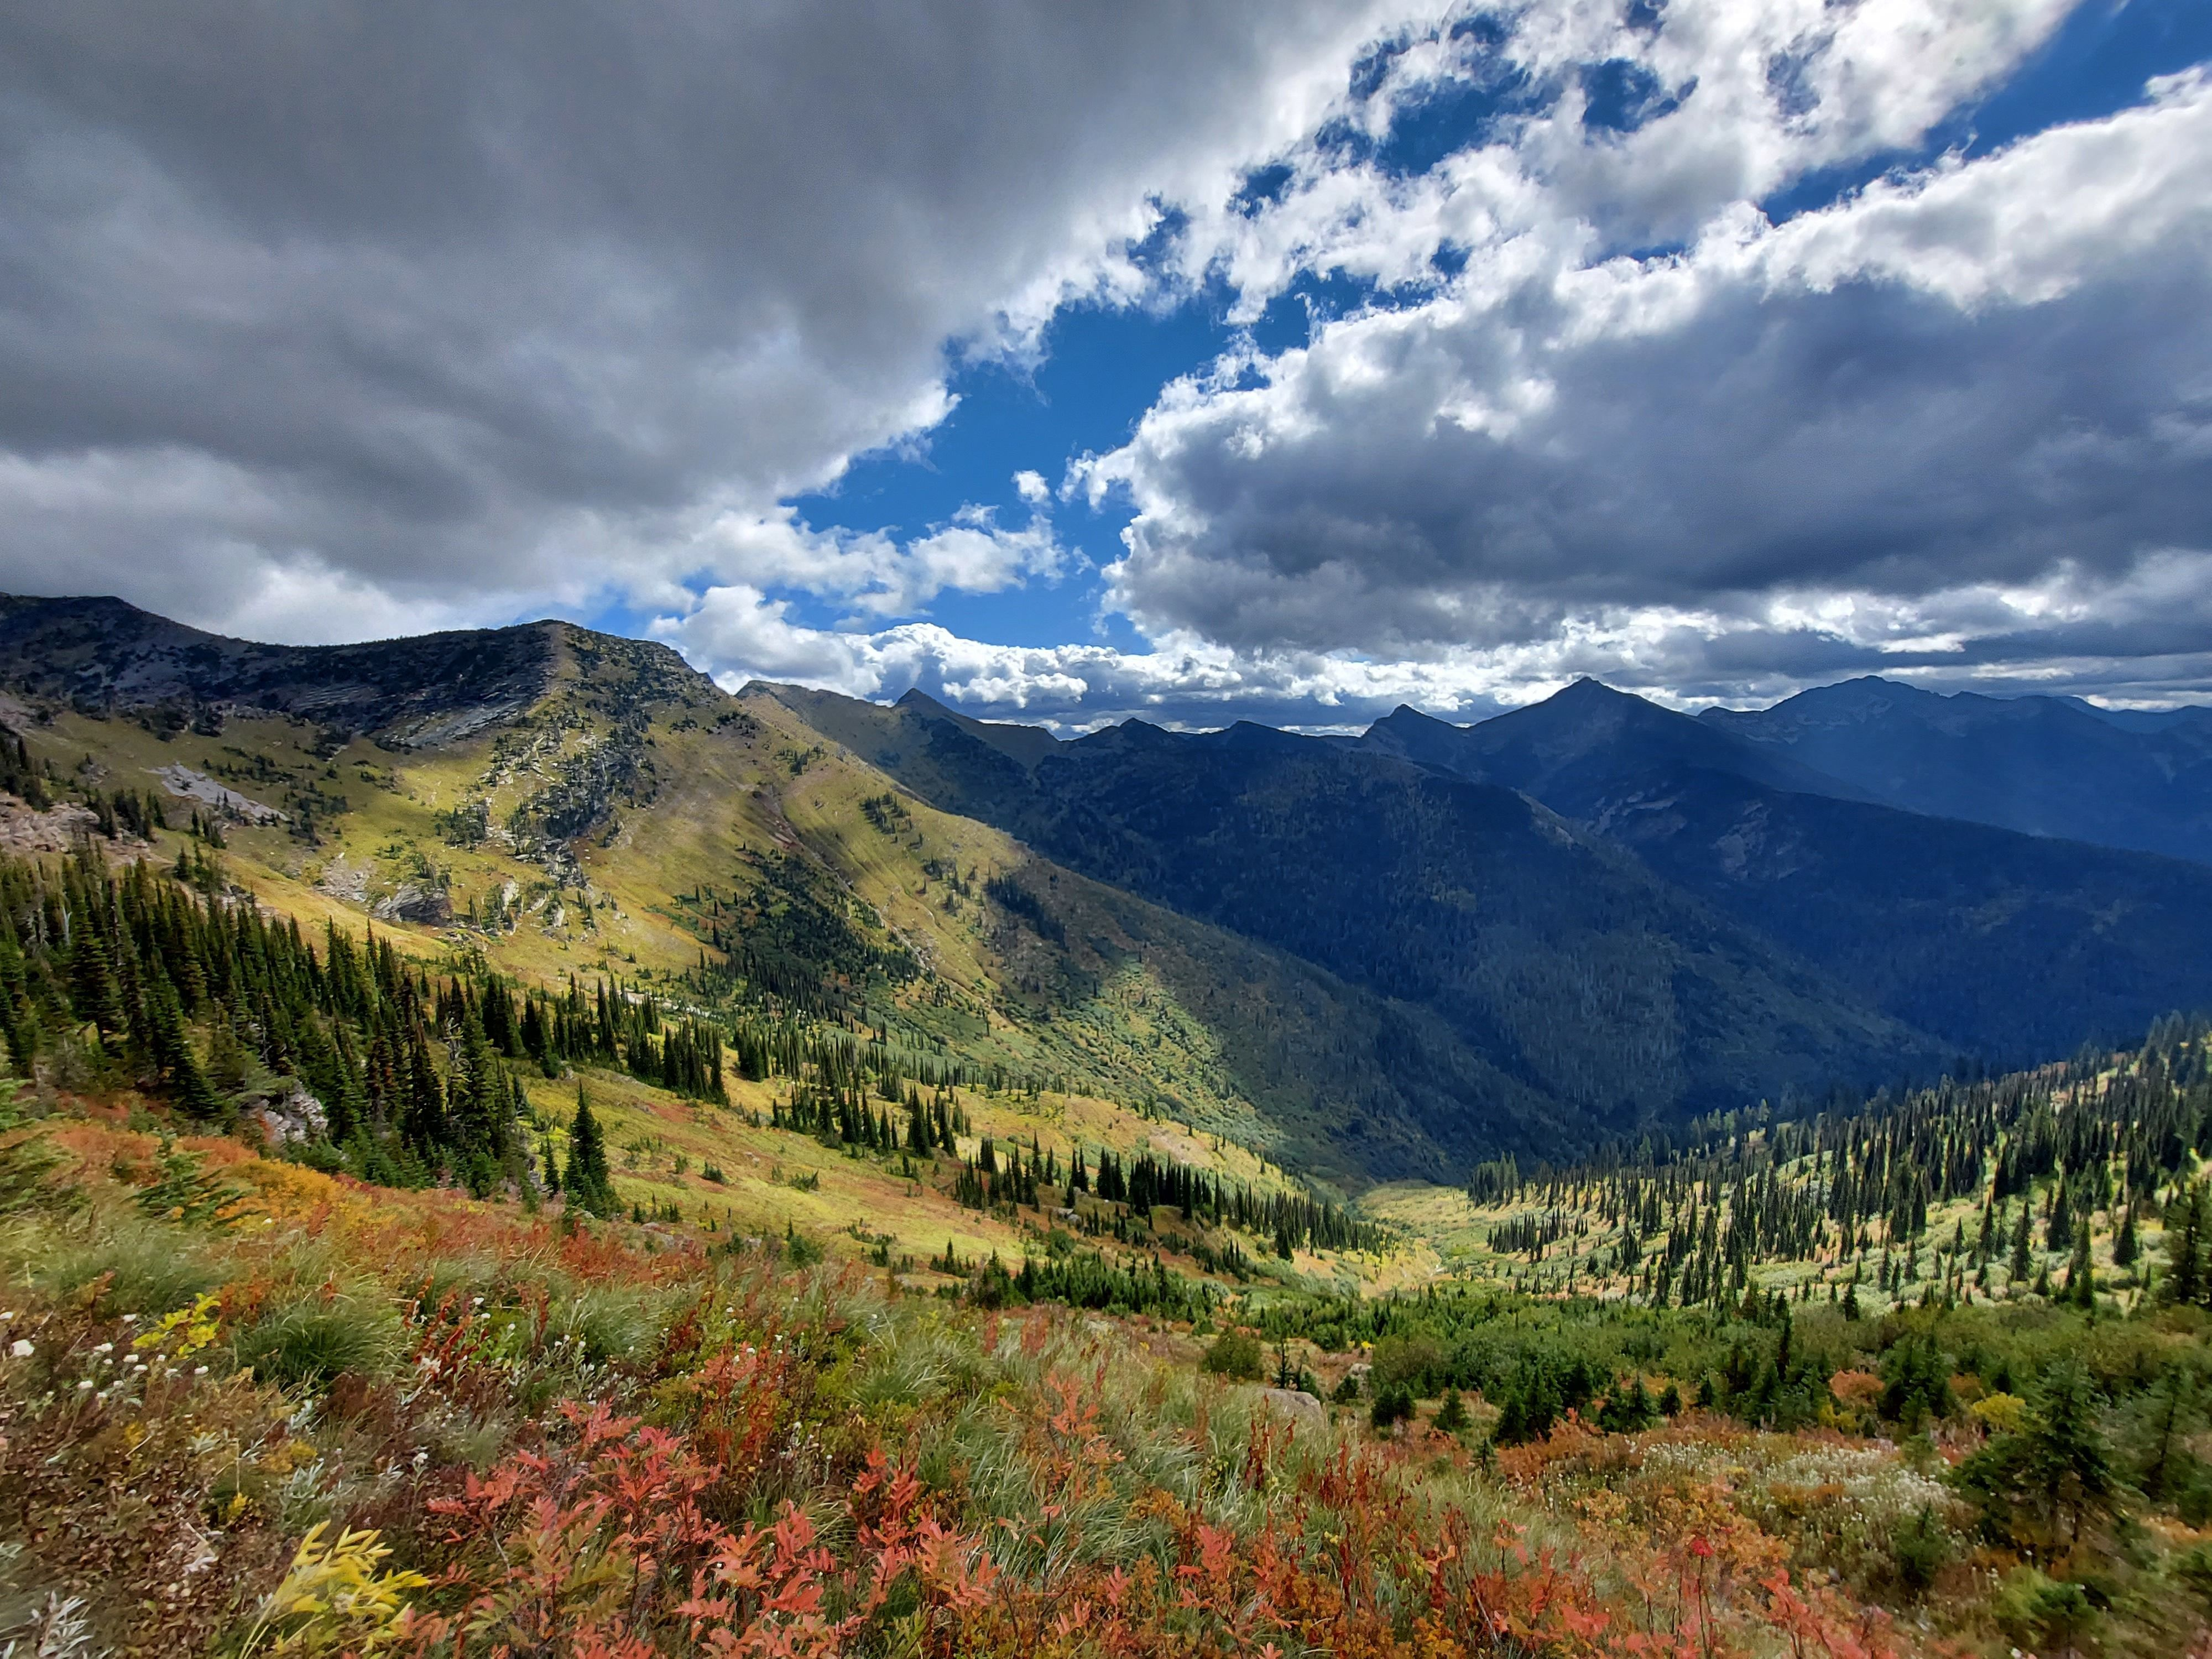 Green rolling hills, dotted with red fall colors and a partly cloudy sky